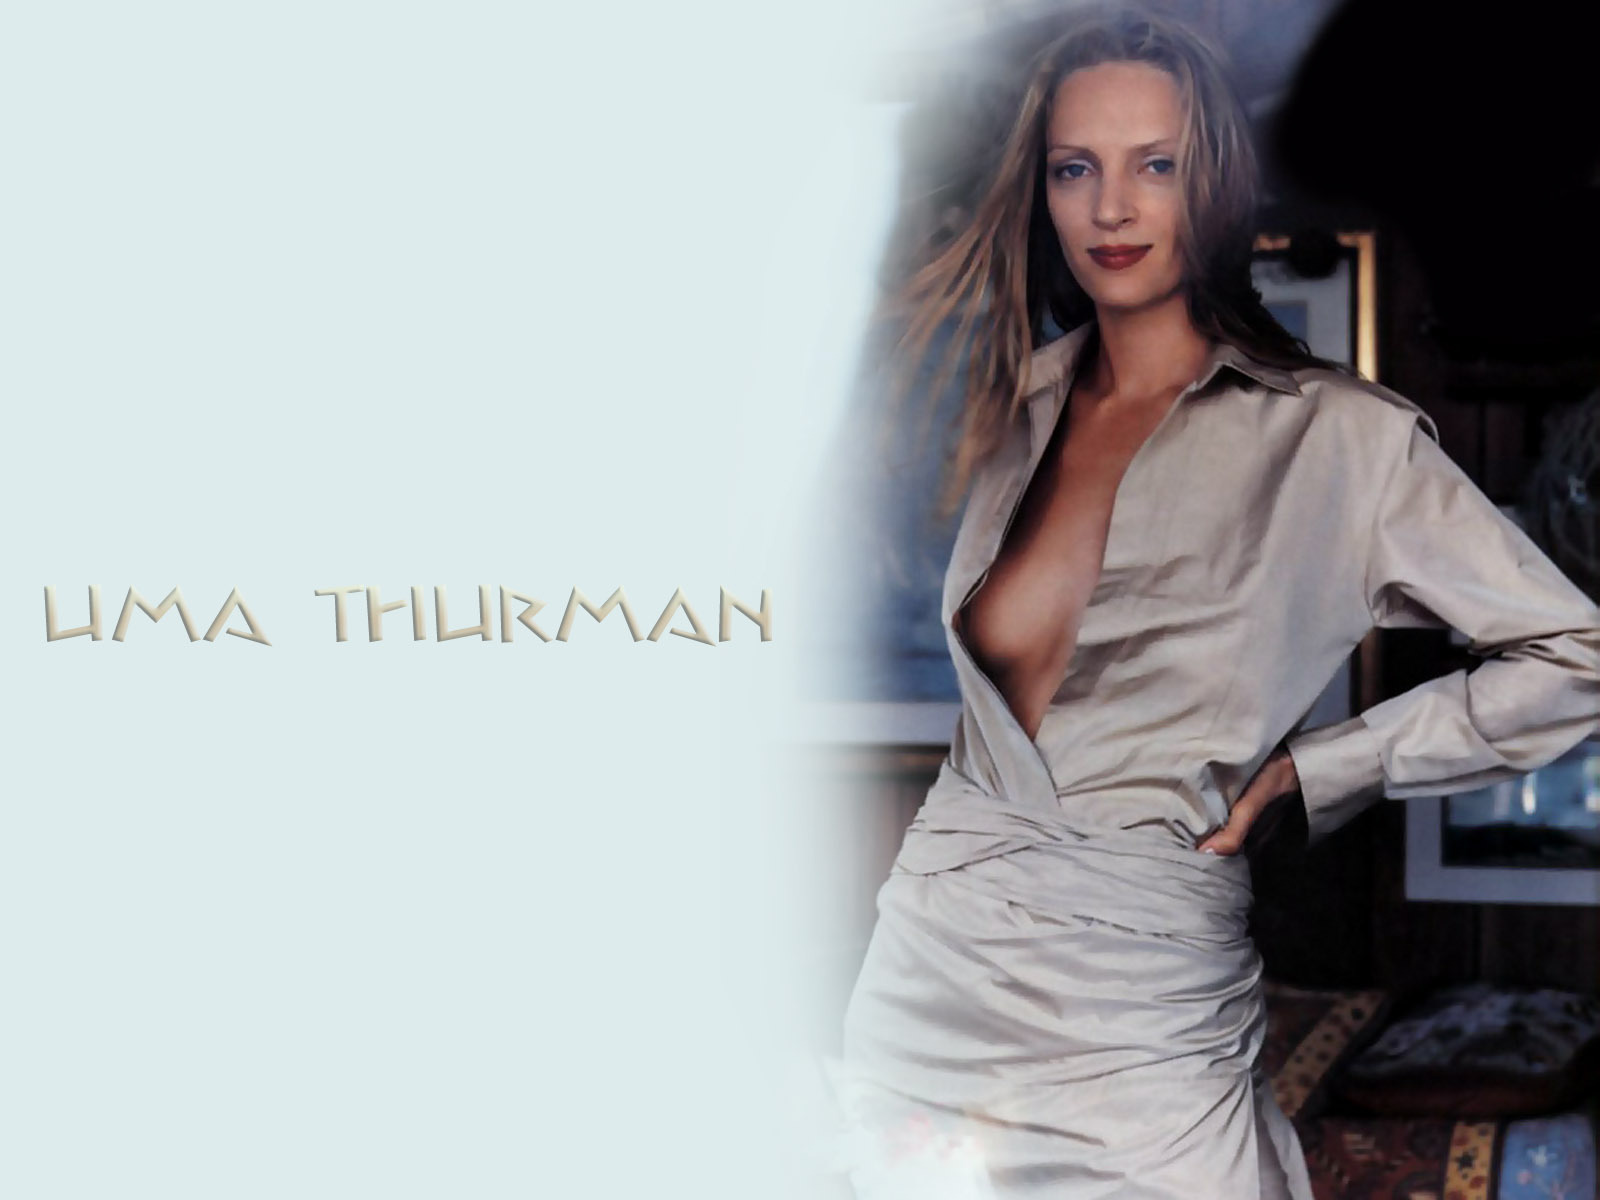 Uma Thurman - Images Colection